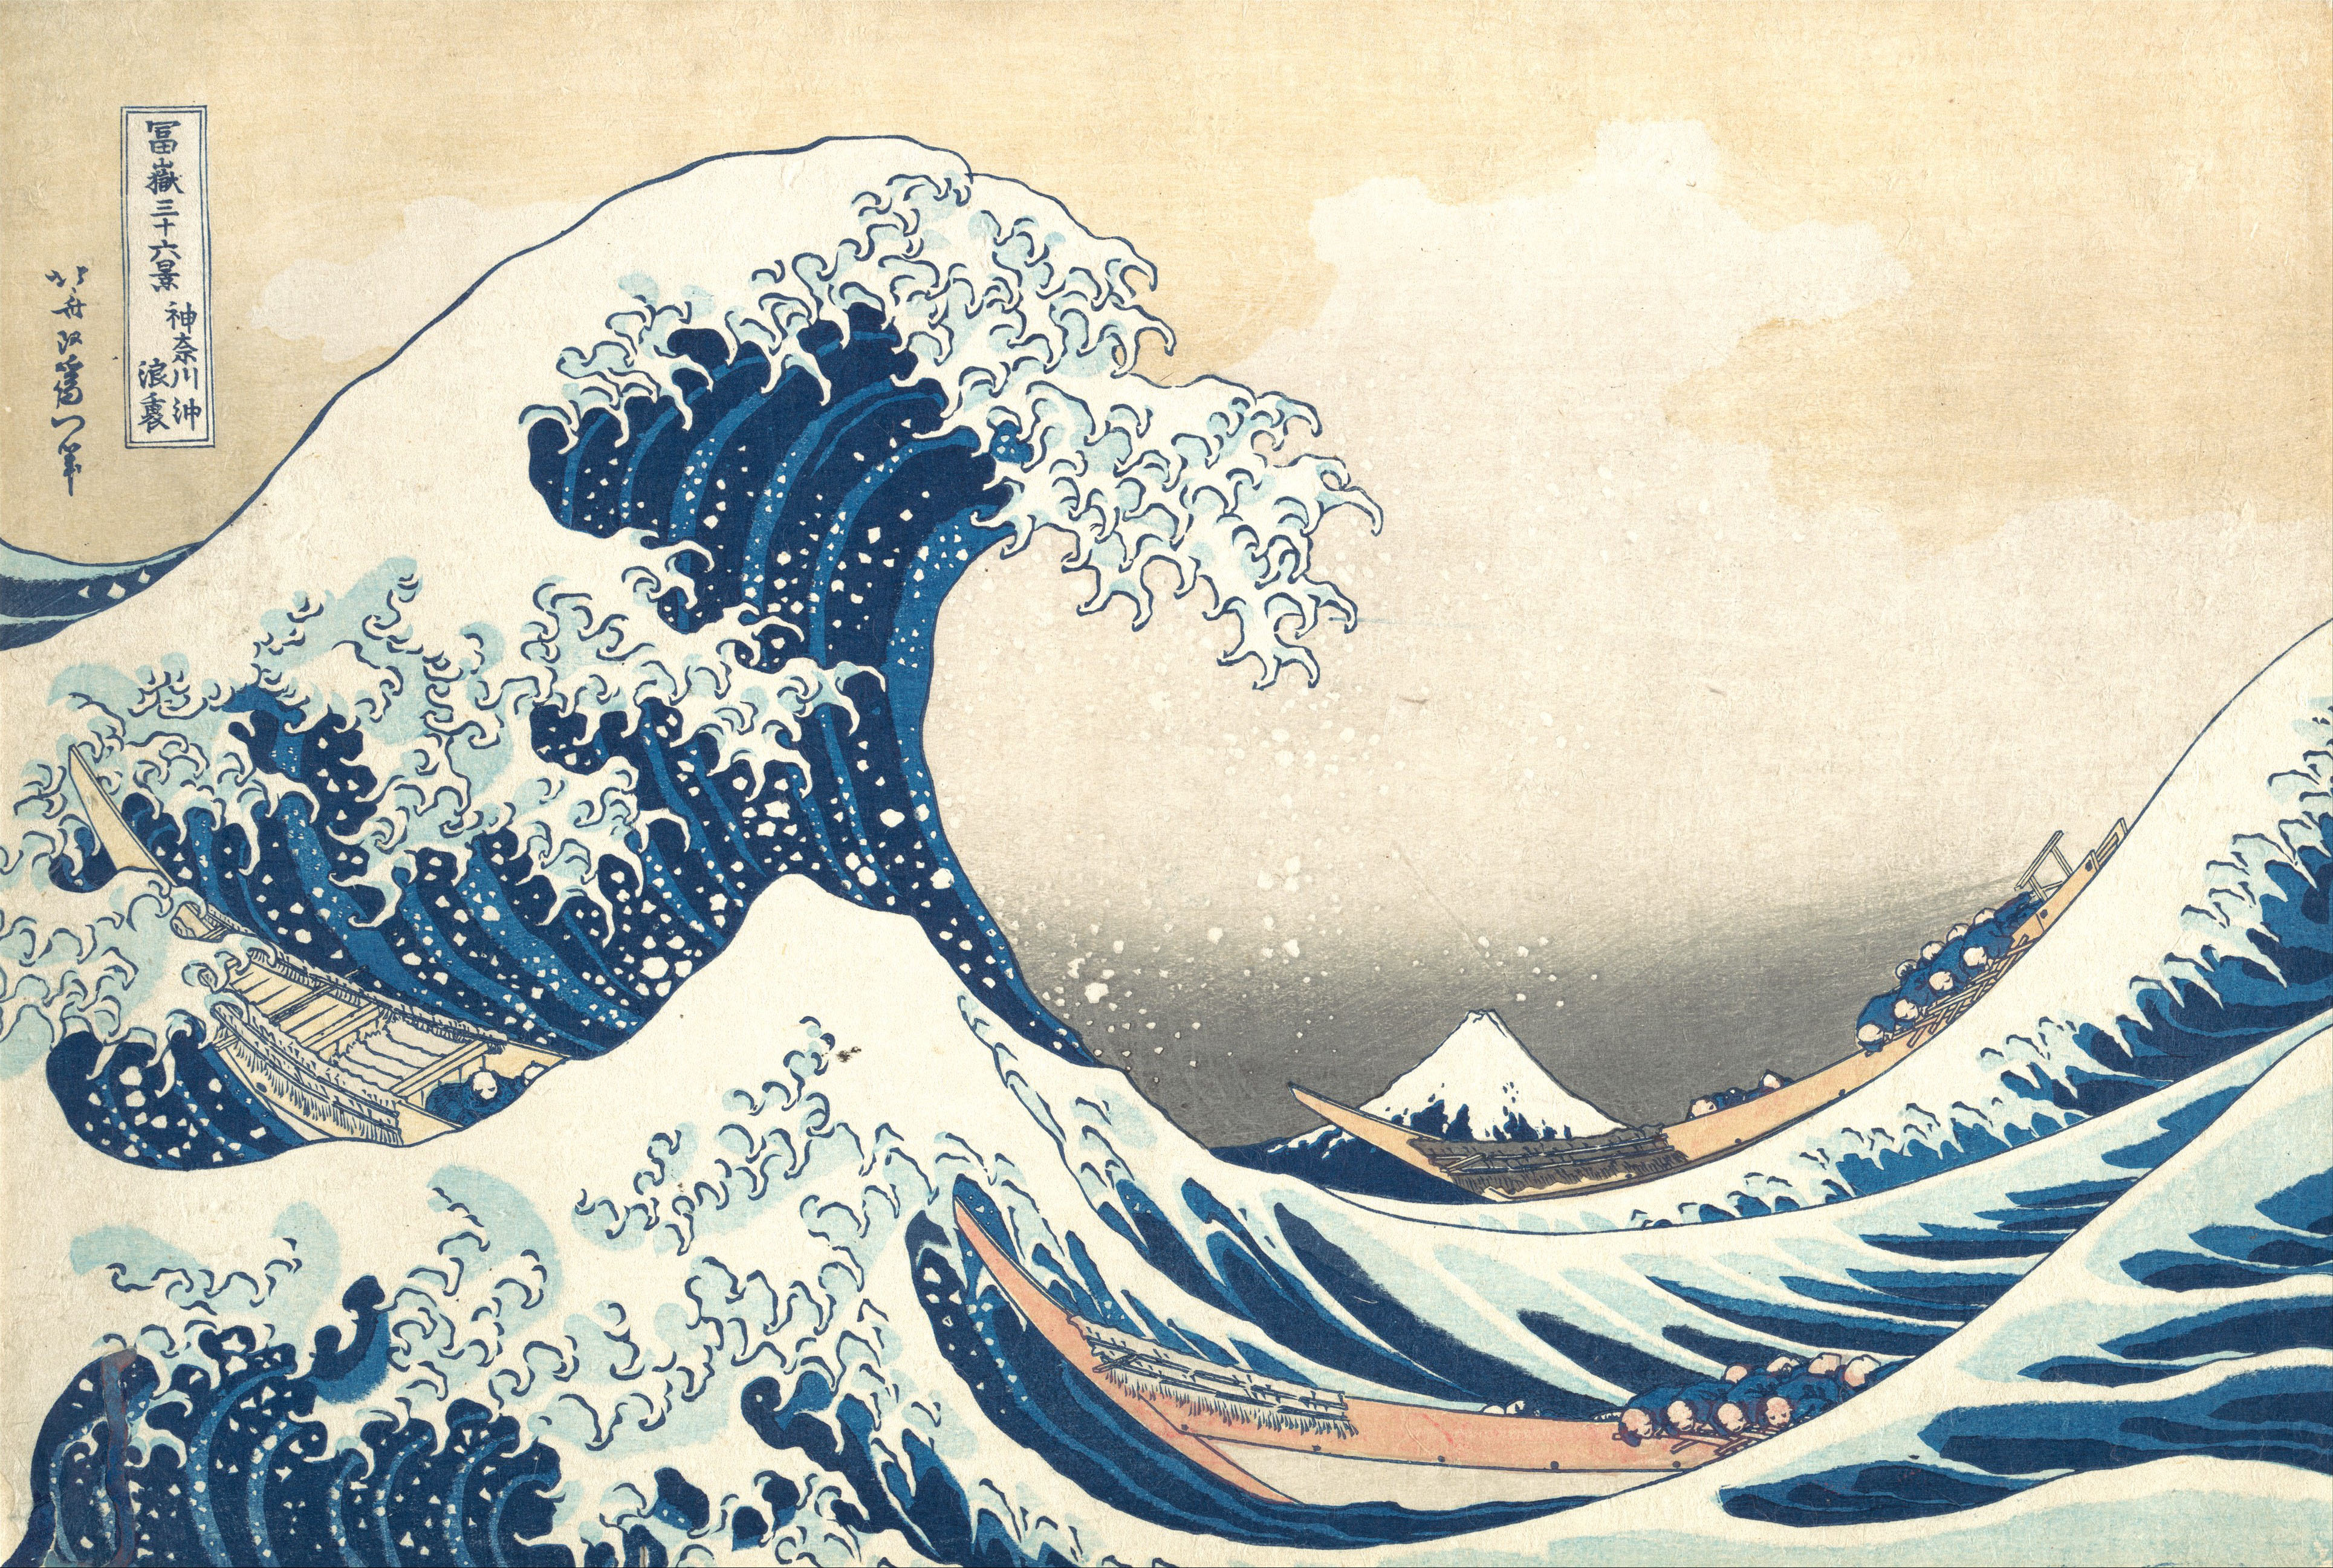 Behind the Great Wave at Kanagawa by Hokusai